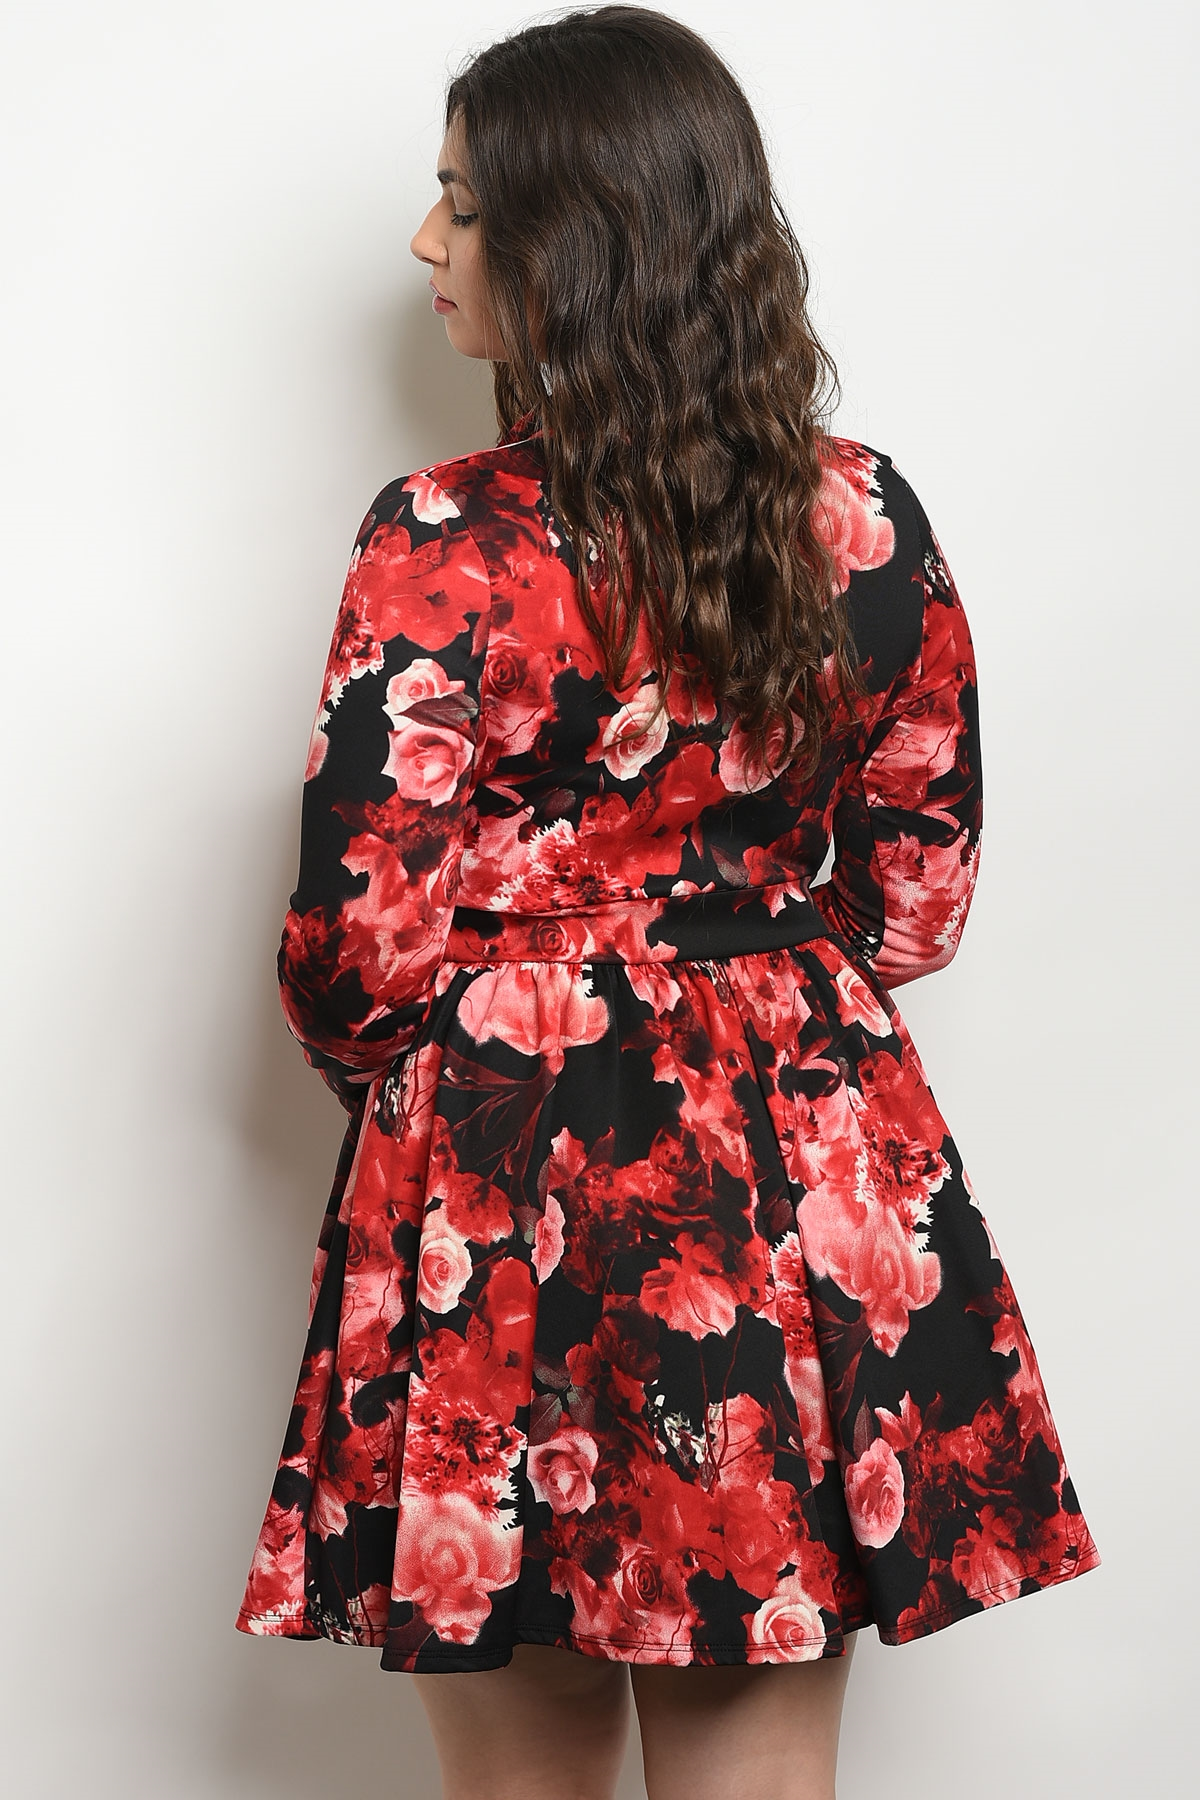 af478293b549 C33-A-1-D426532X BLACK RED WITH ROSES PLUS SIZE DRESS 2-2